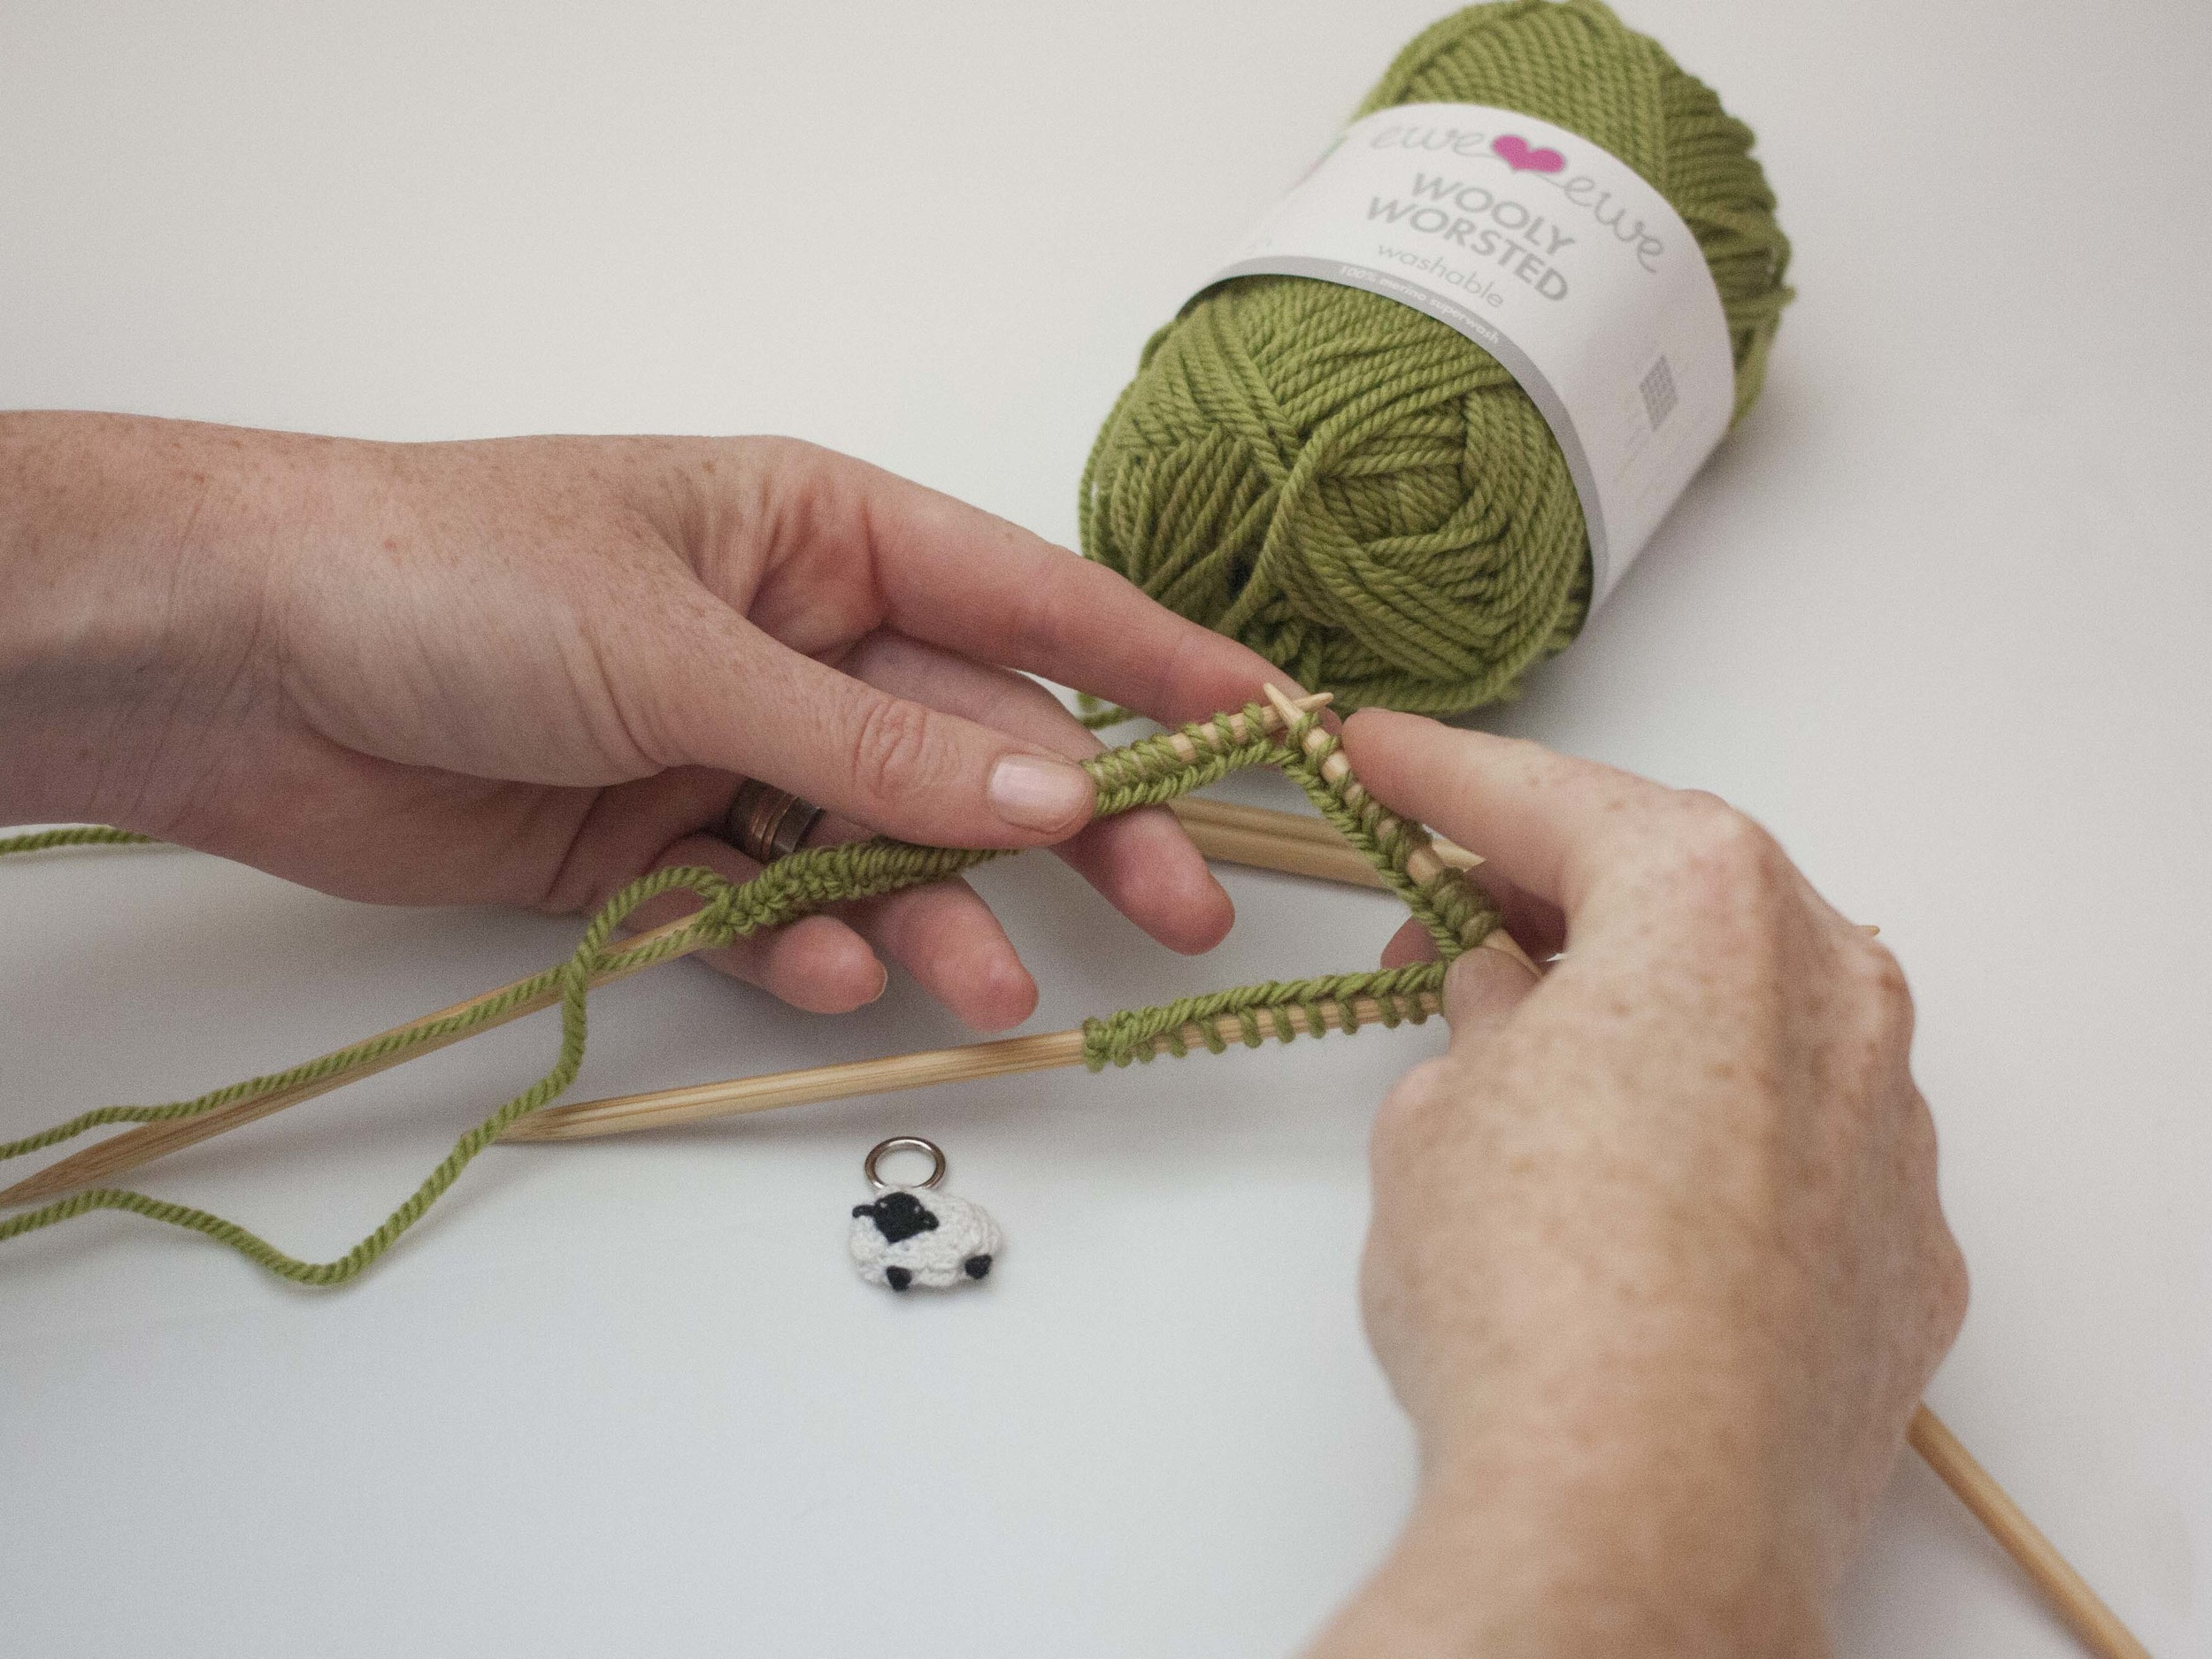 casting on to double-pointed needles